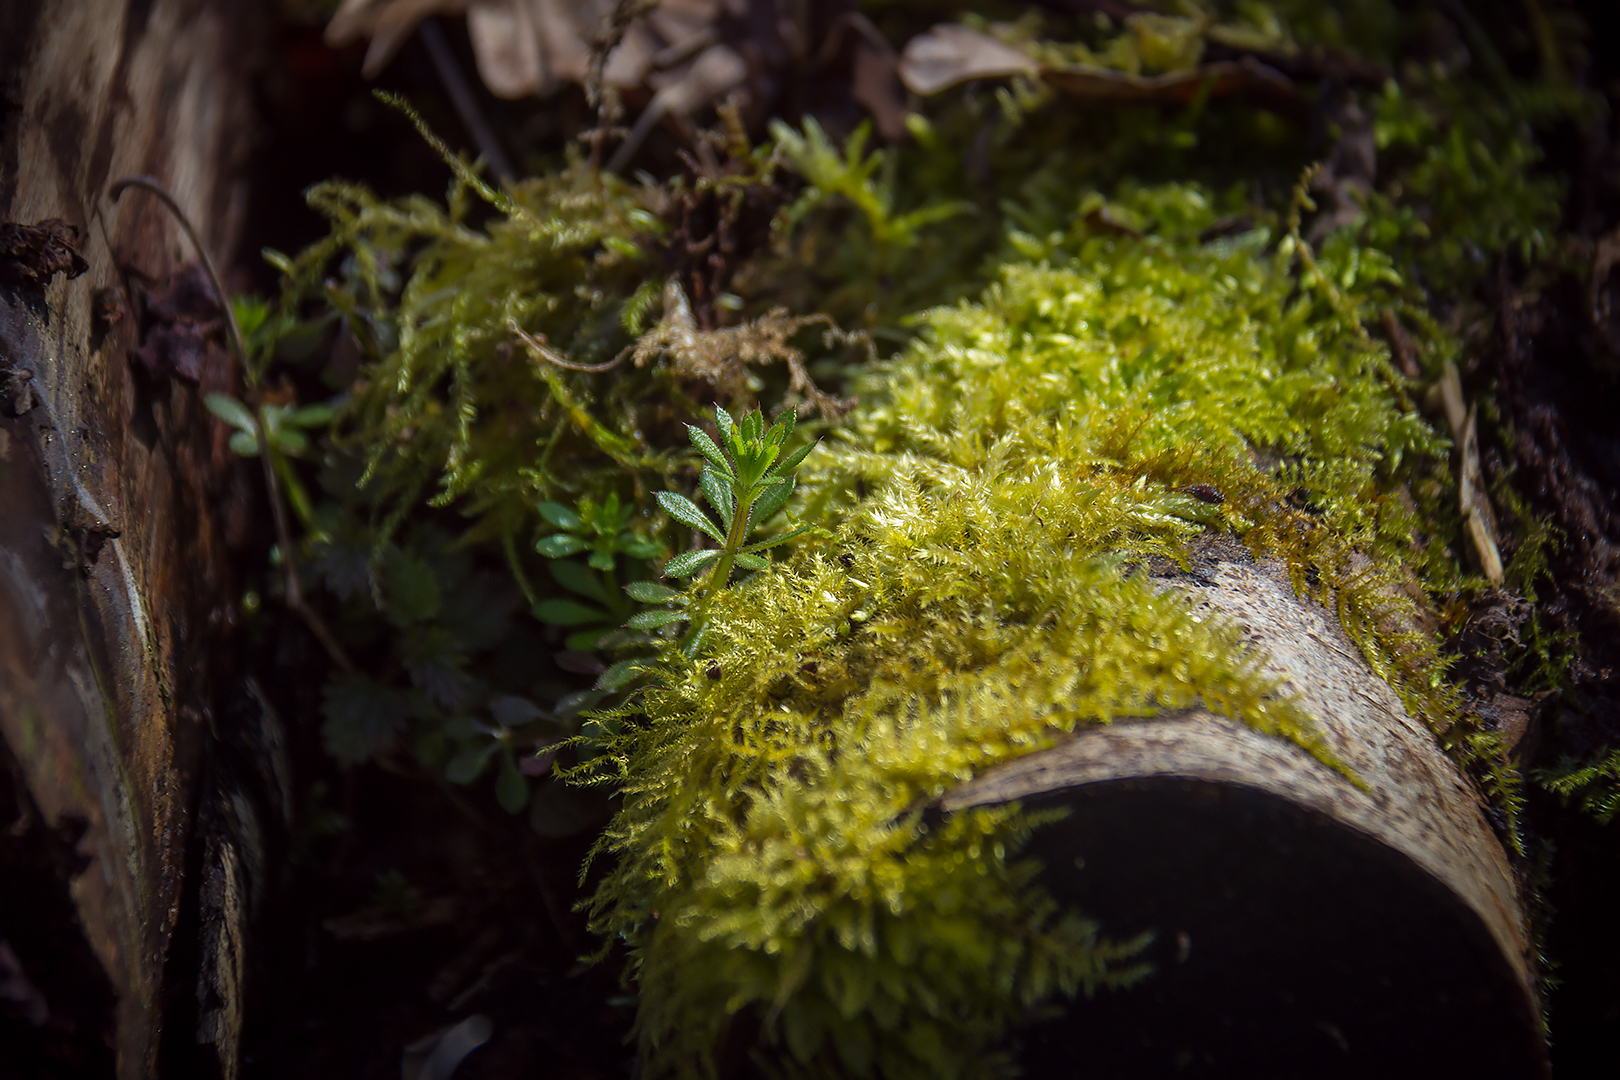 A detail of a small patch of moss